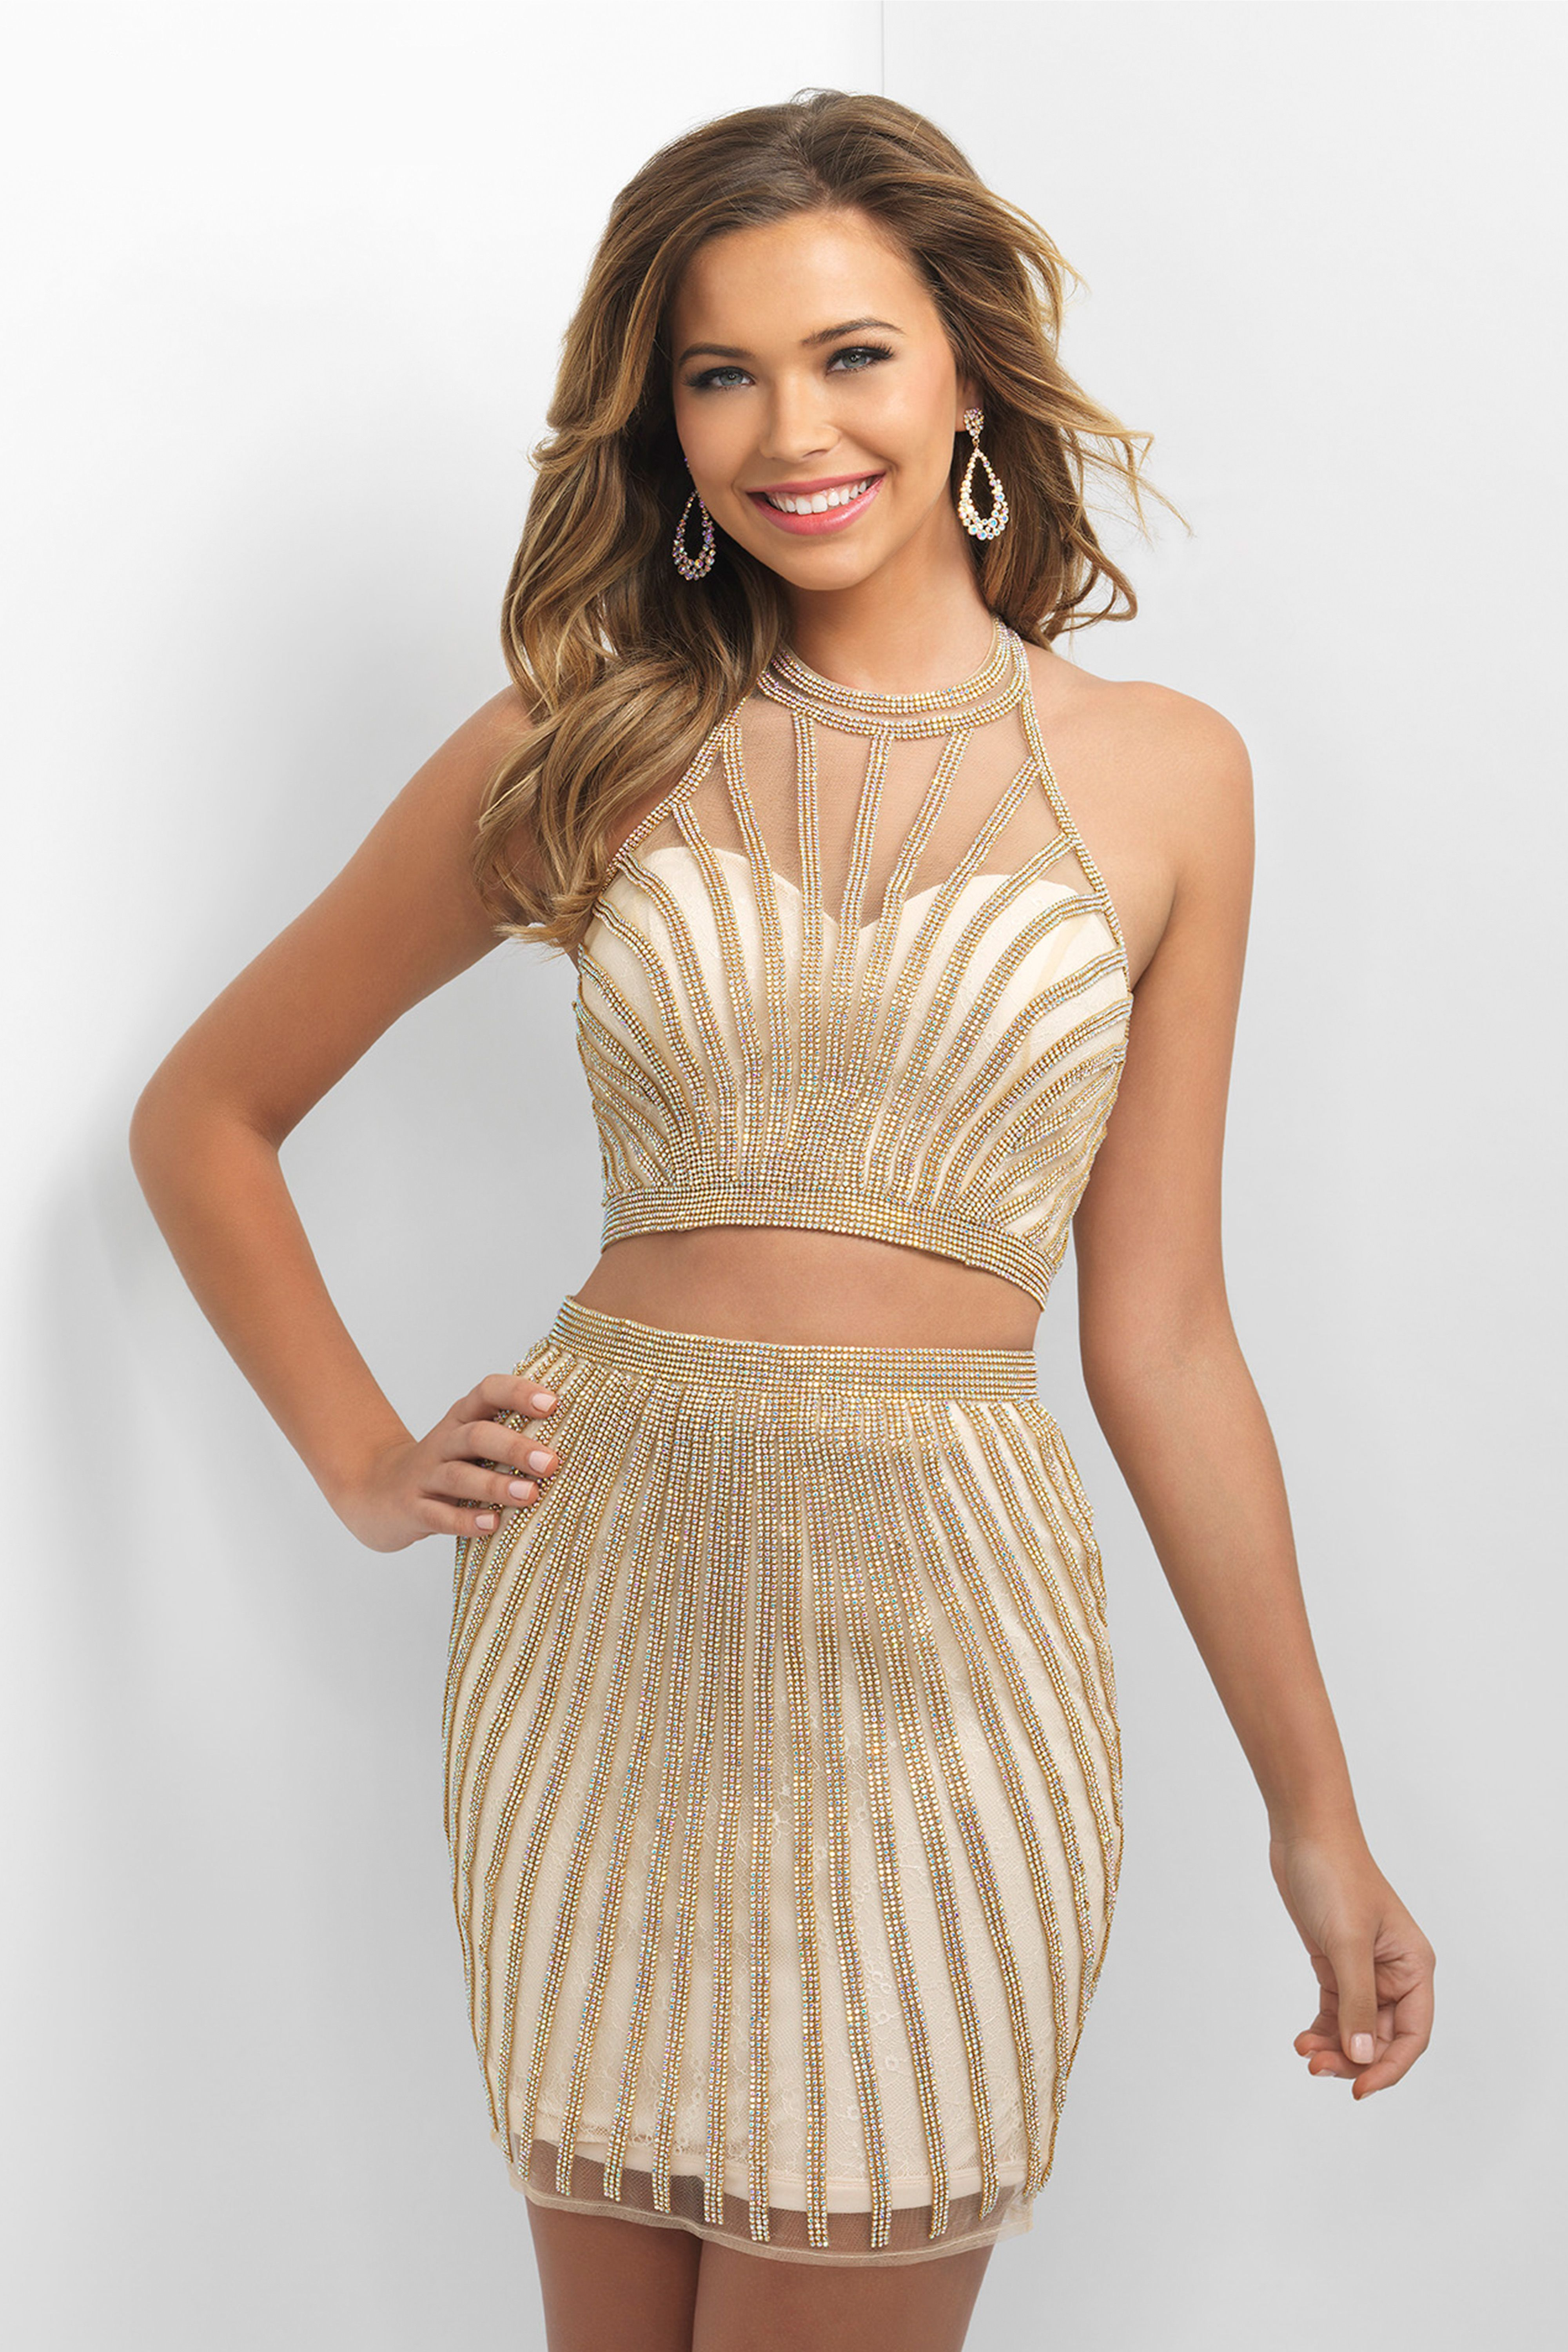 17 Best Gold, Silver and Metallic Prom Dresses 2018 - Cute Gold Gowns